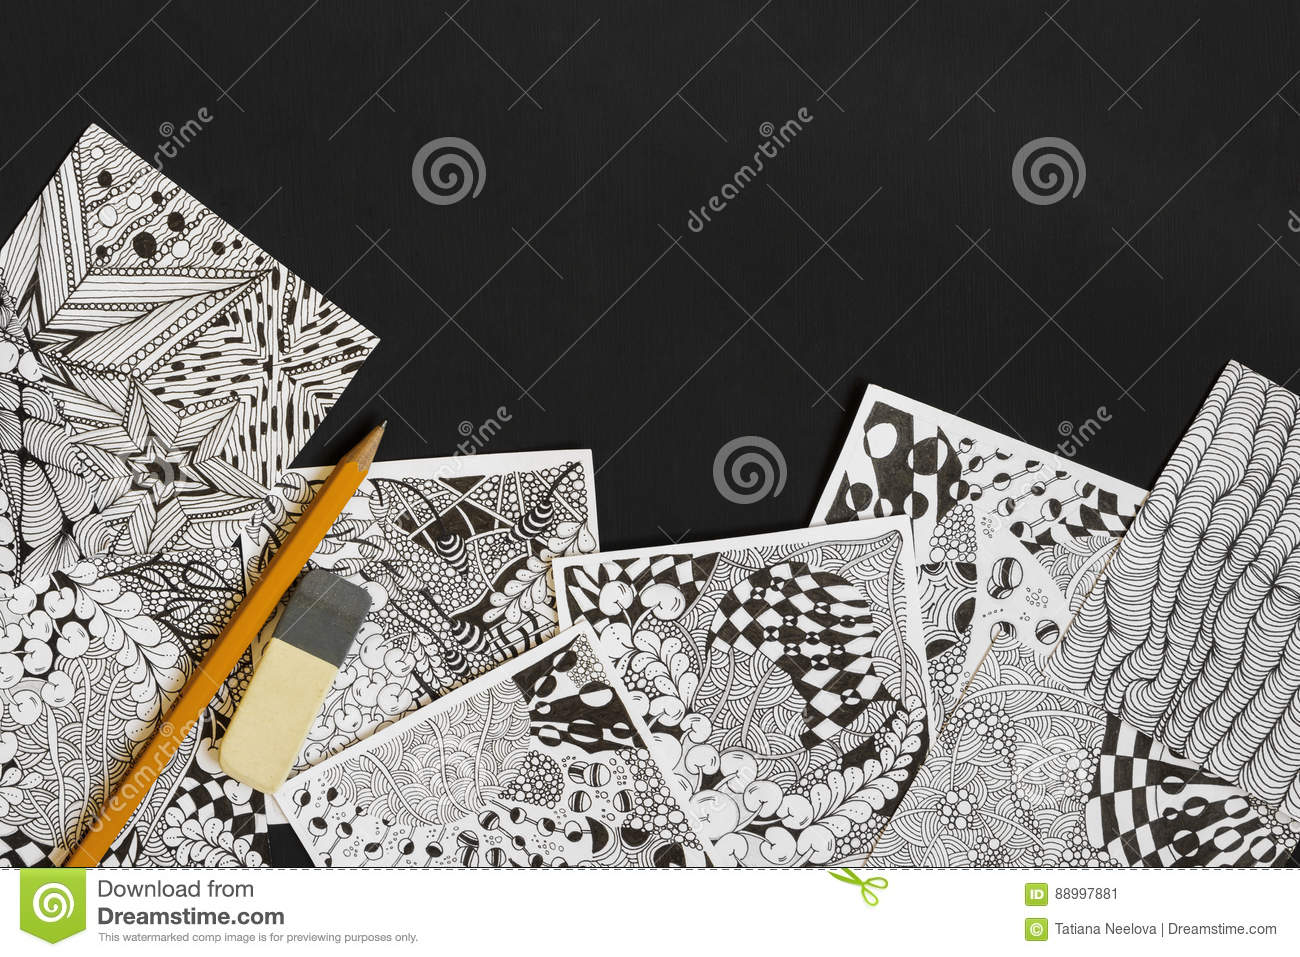 Doodle zen tangle illustration zen art doodle patterns for the beginners sketch illustrations a pencil and eraser on the dark wooden table